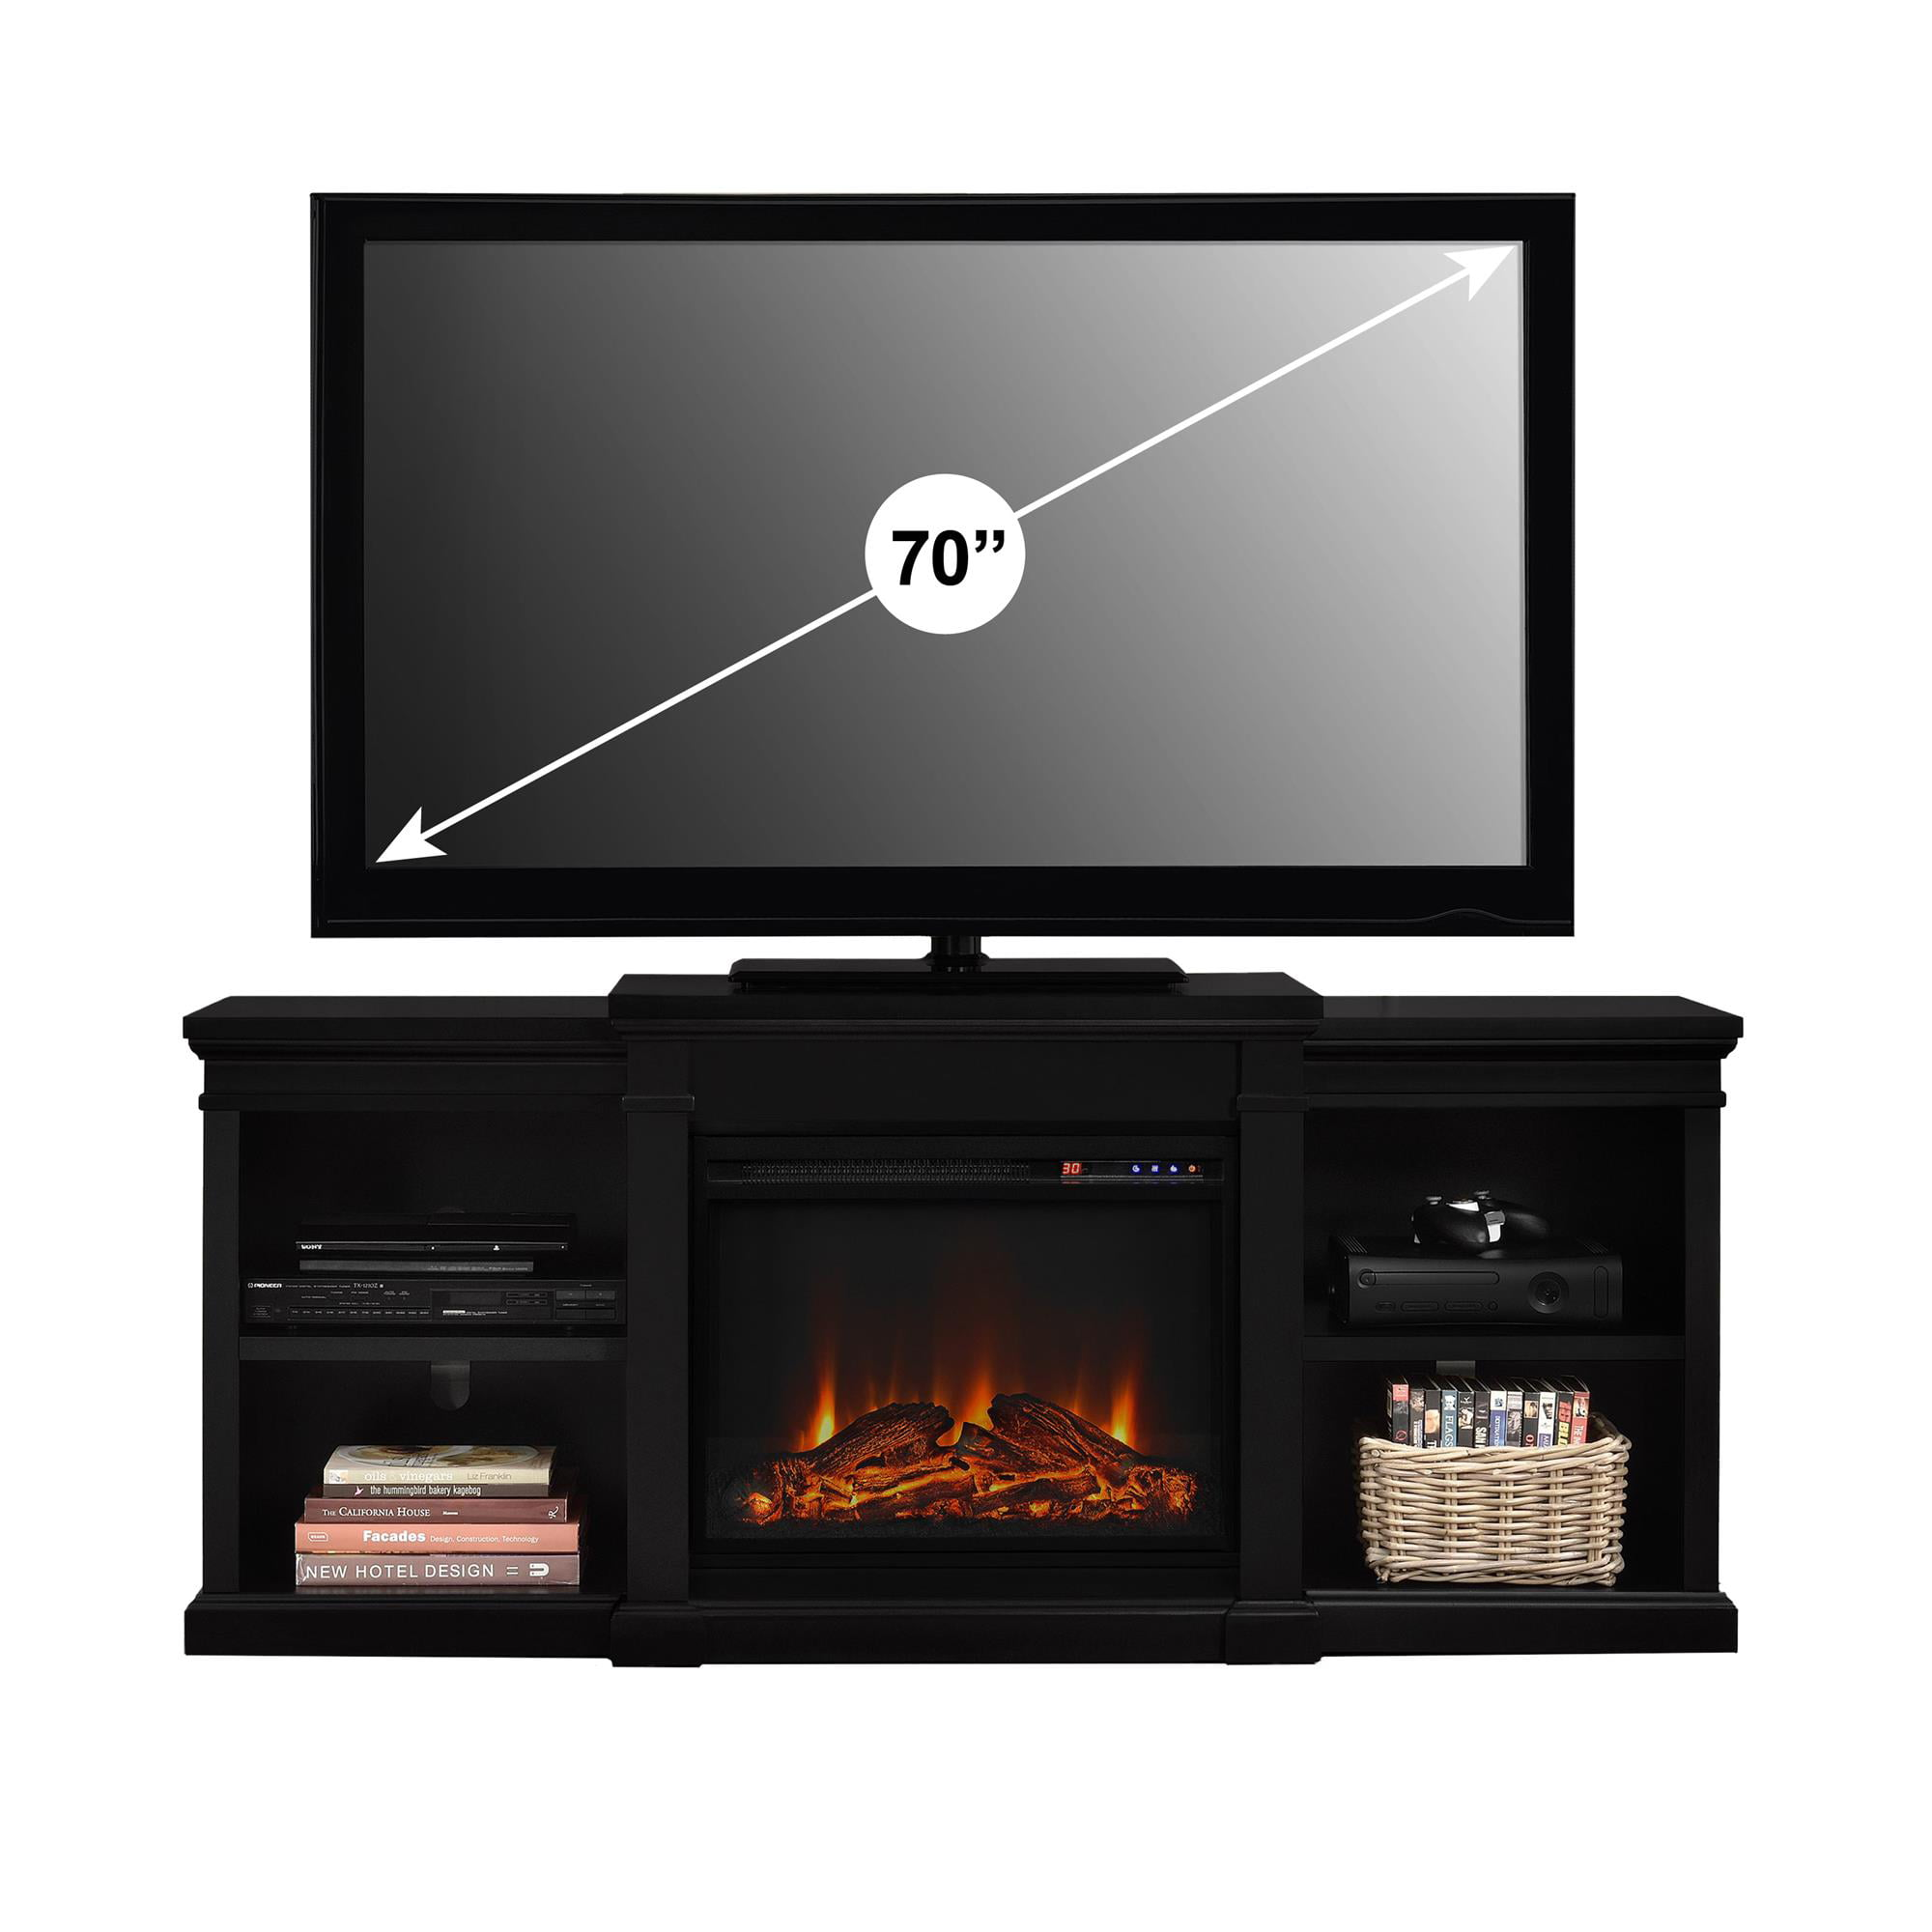 Wondrous Ameriwood Home Manchester Electric Fireplace Tv Stand For Tvs Up To 70 Multiple Colors Beutiful Home Inspiration Ommitmahrainfo